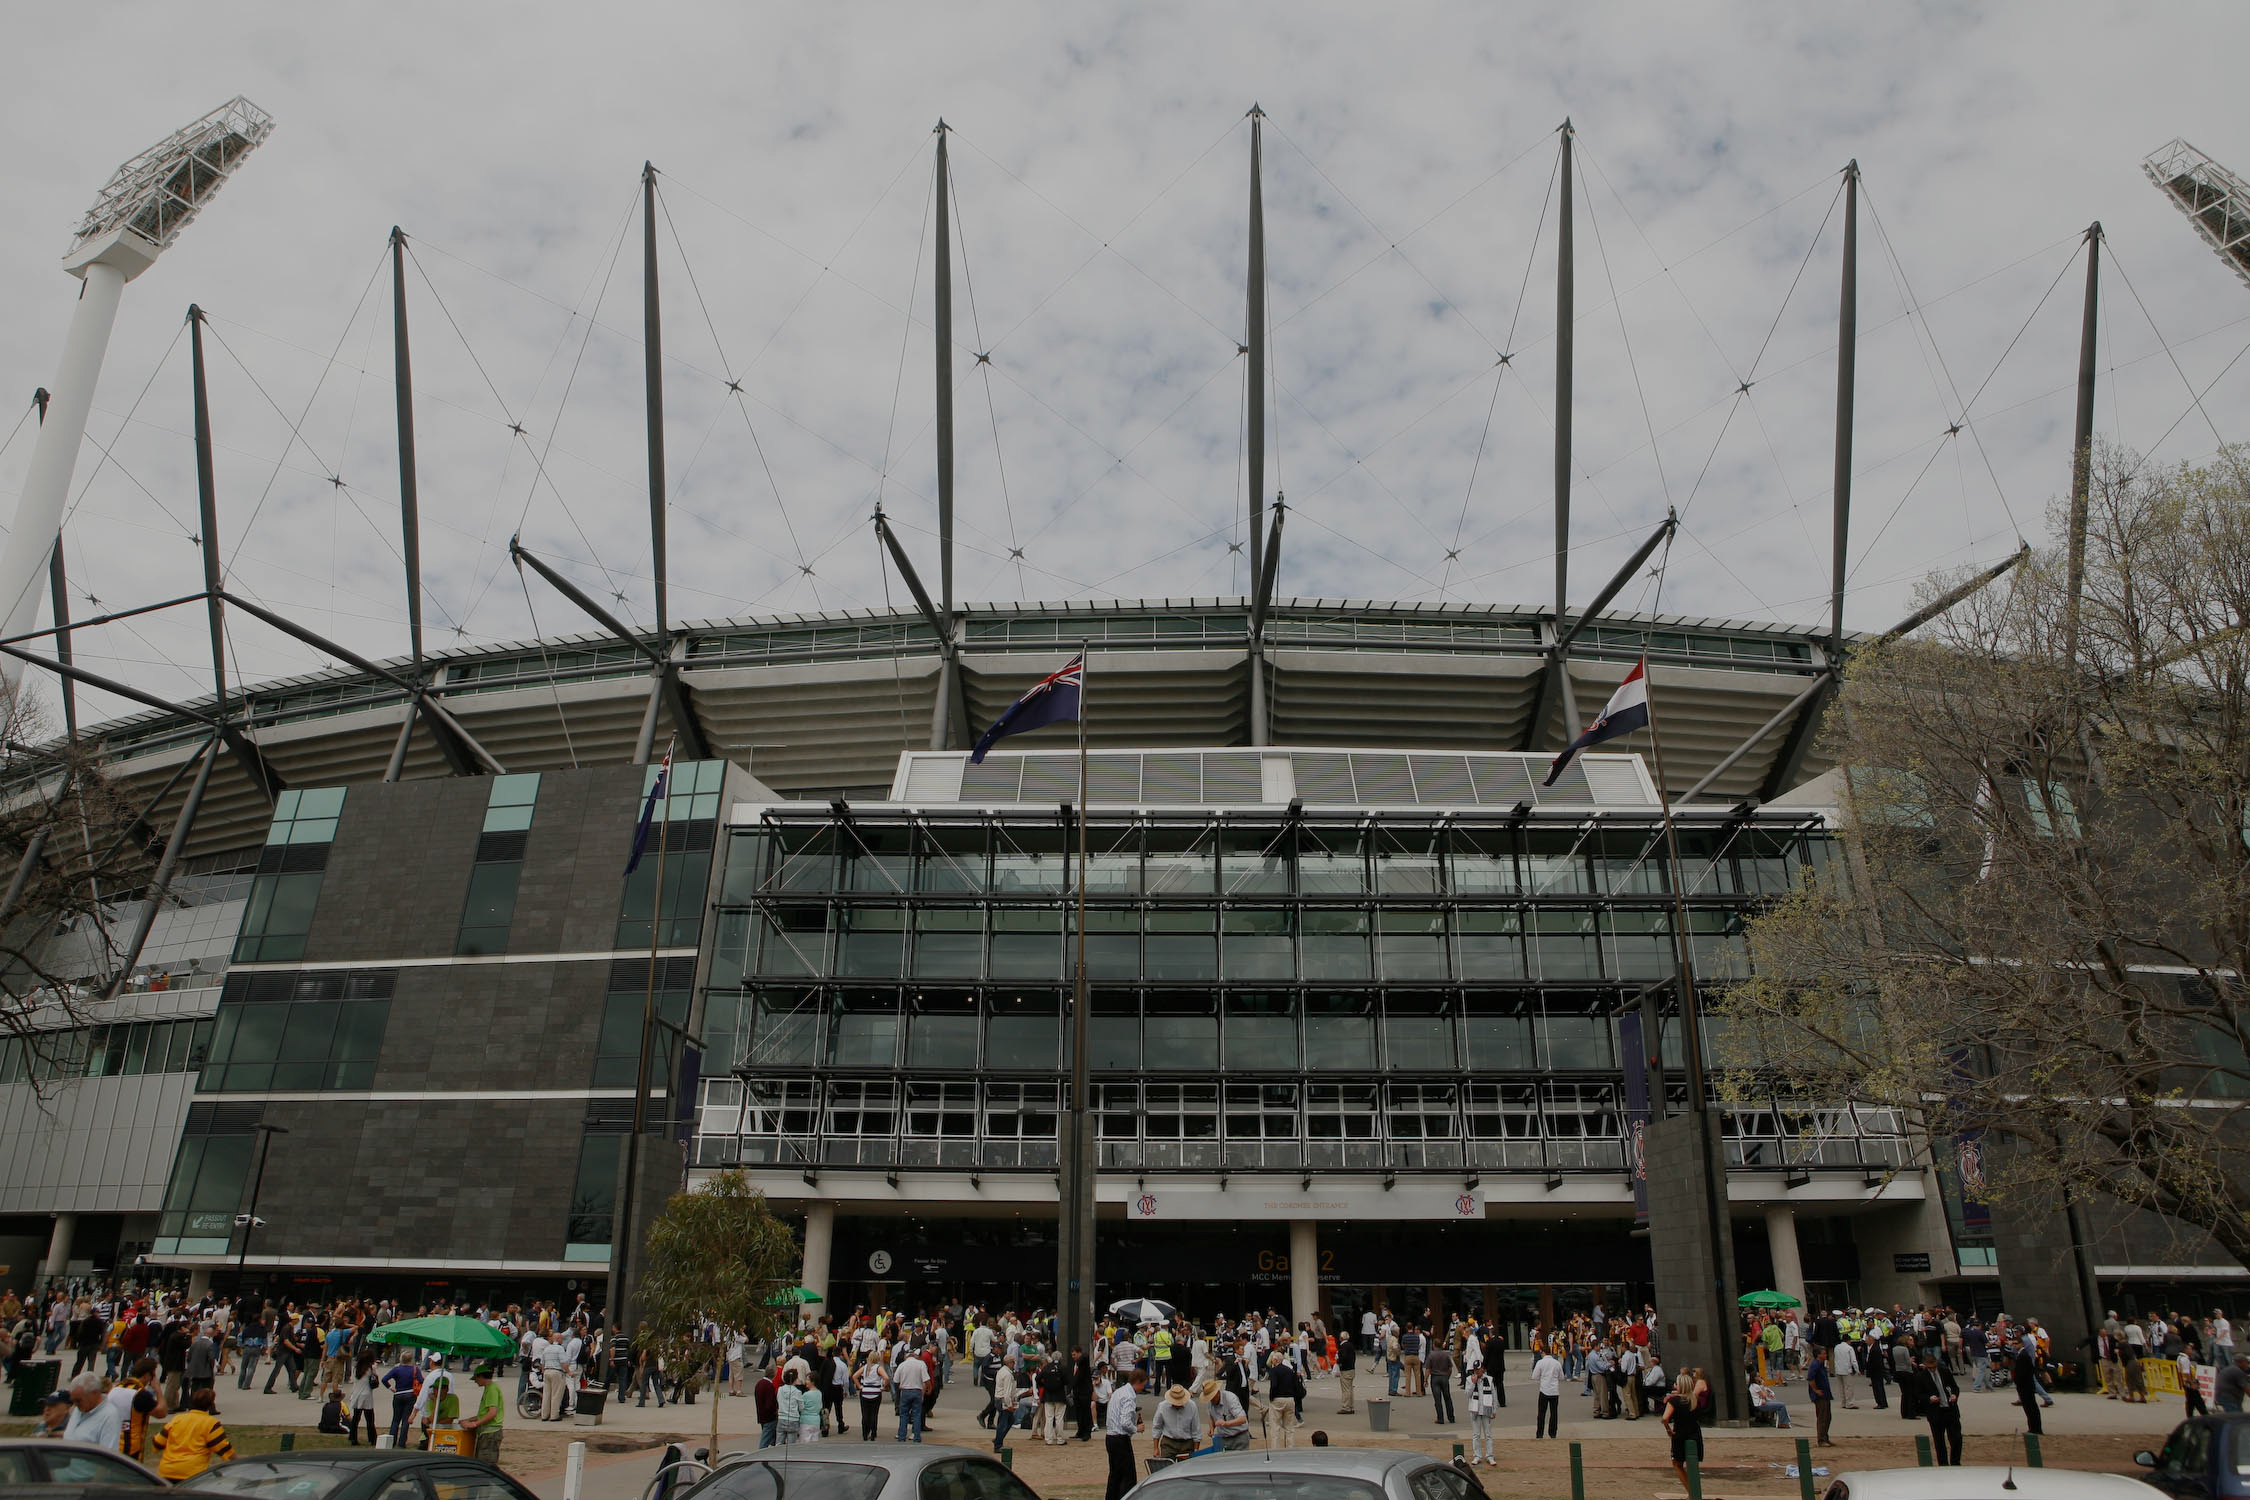 Mcg facilities for those with disabilities accessible facilities dzzzfo